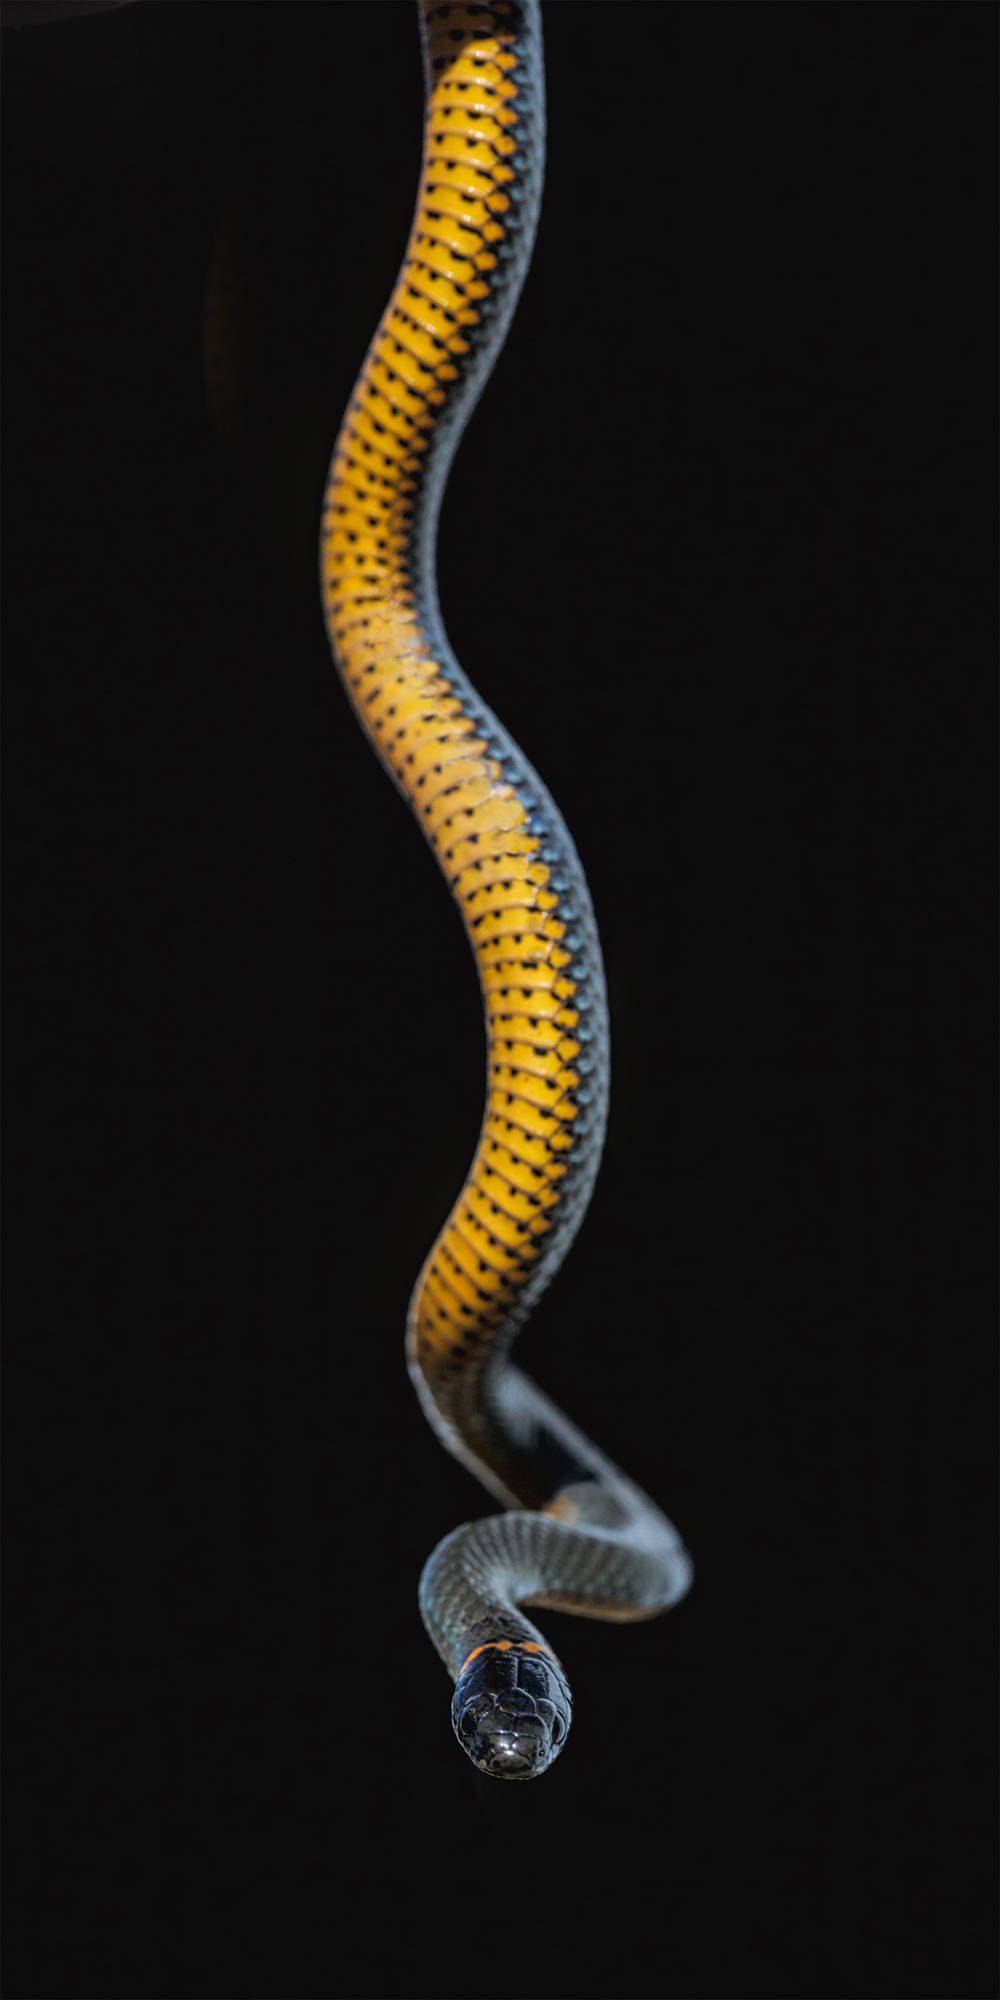 Ring-necked Snake Northern California